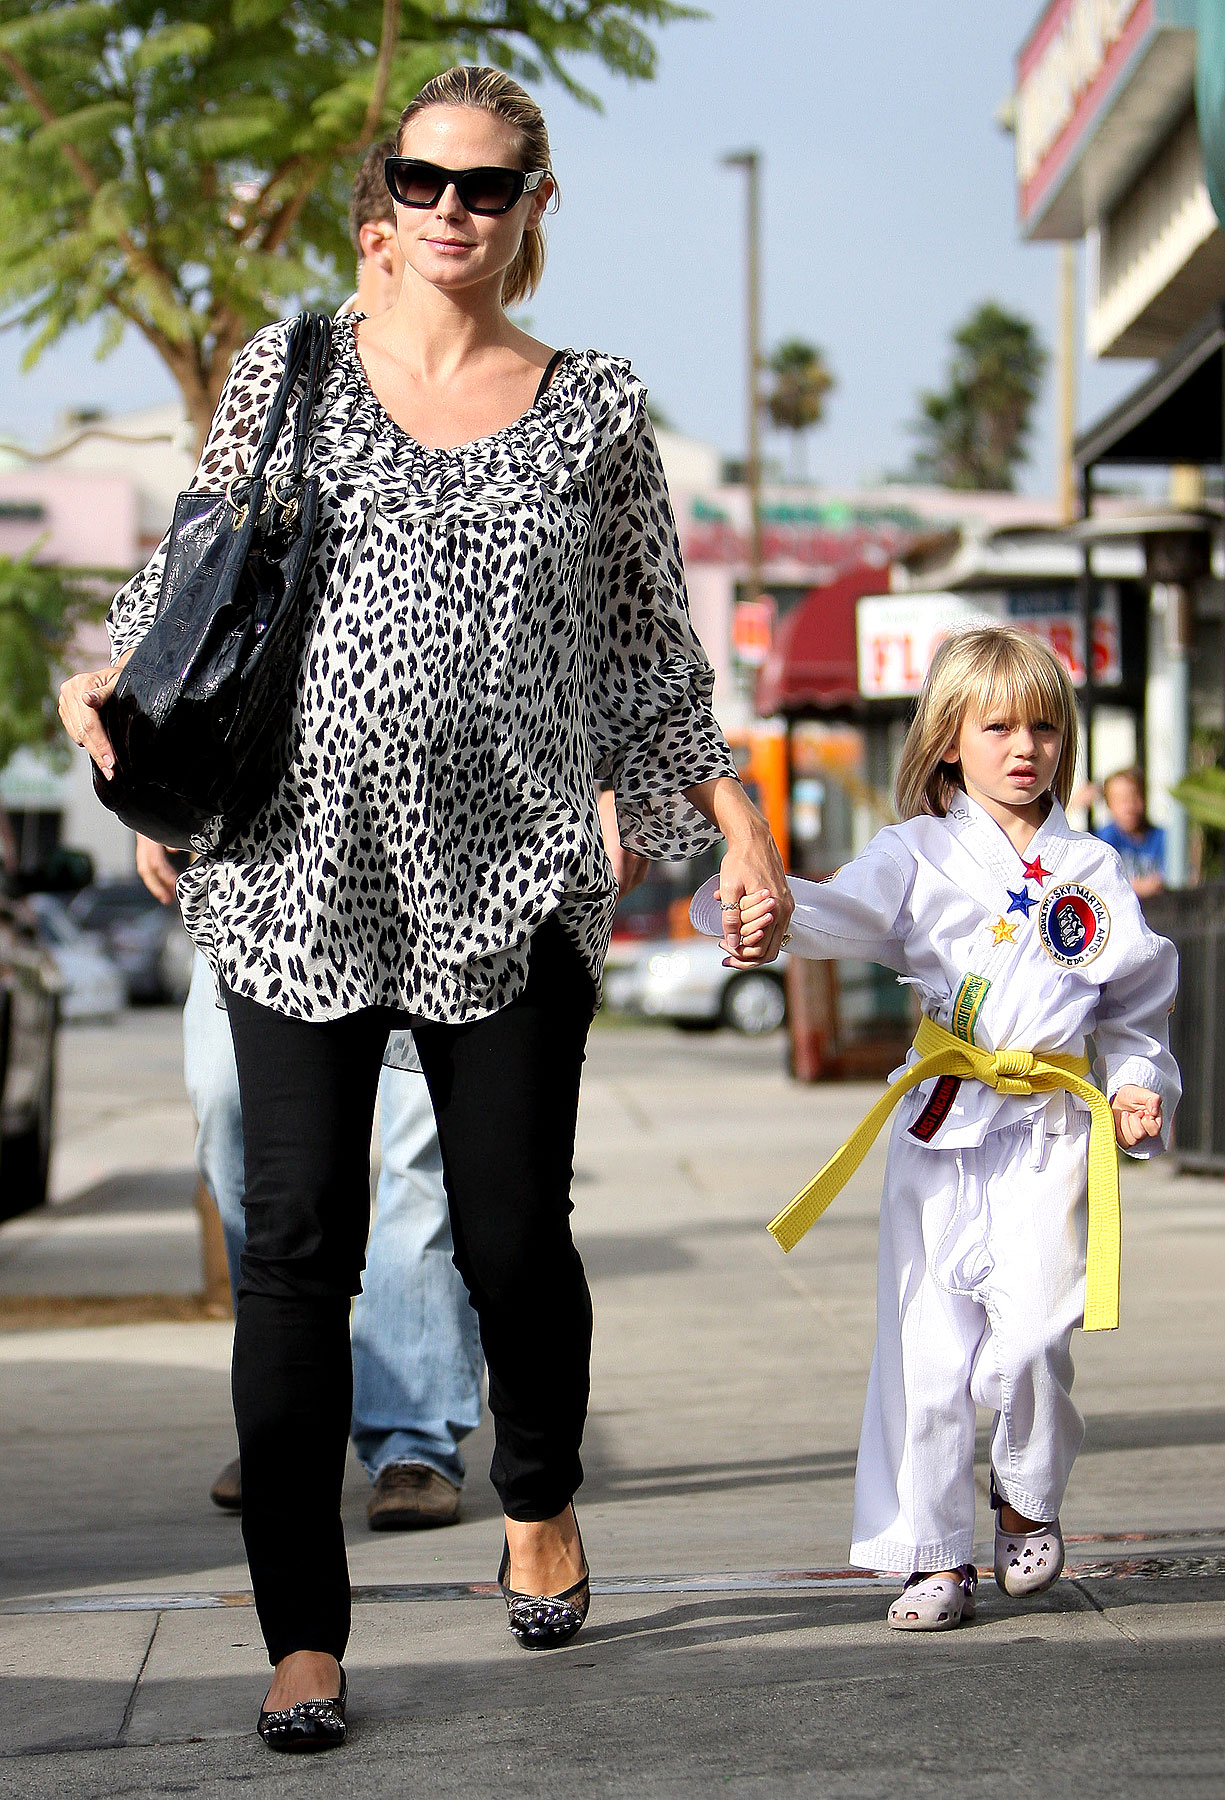 PHOTO GALLERY: Heidi Klum's Karate Kids